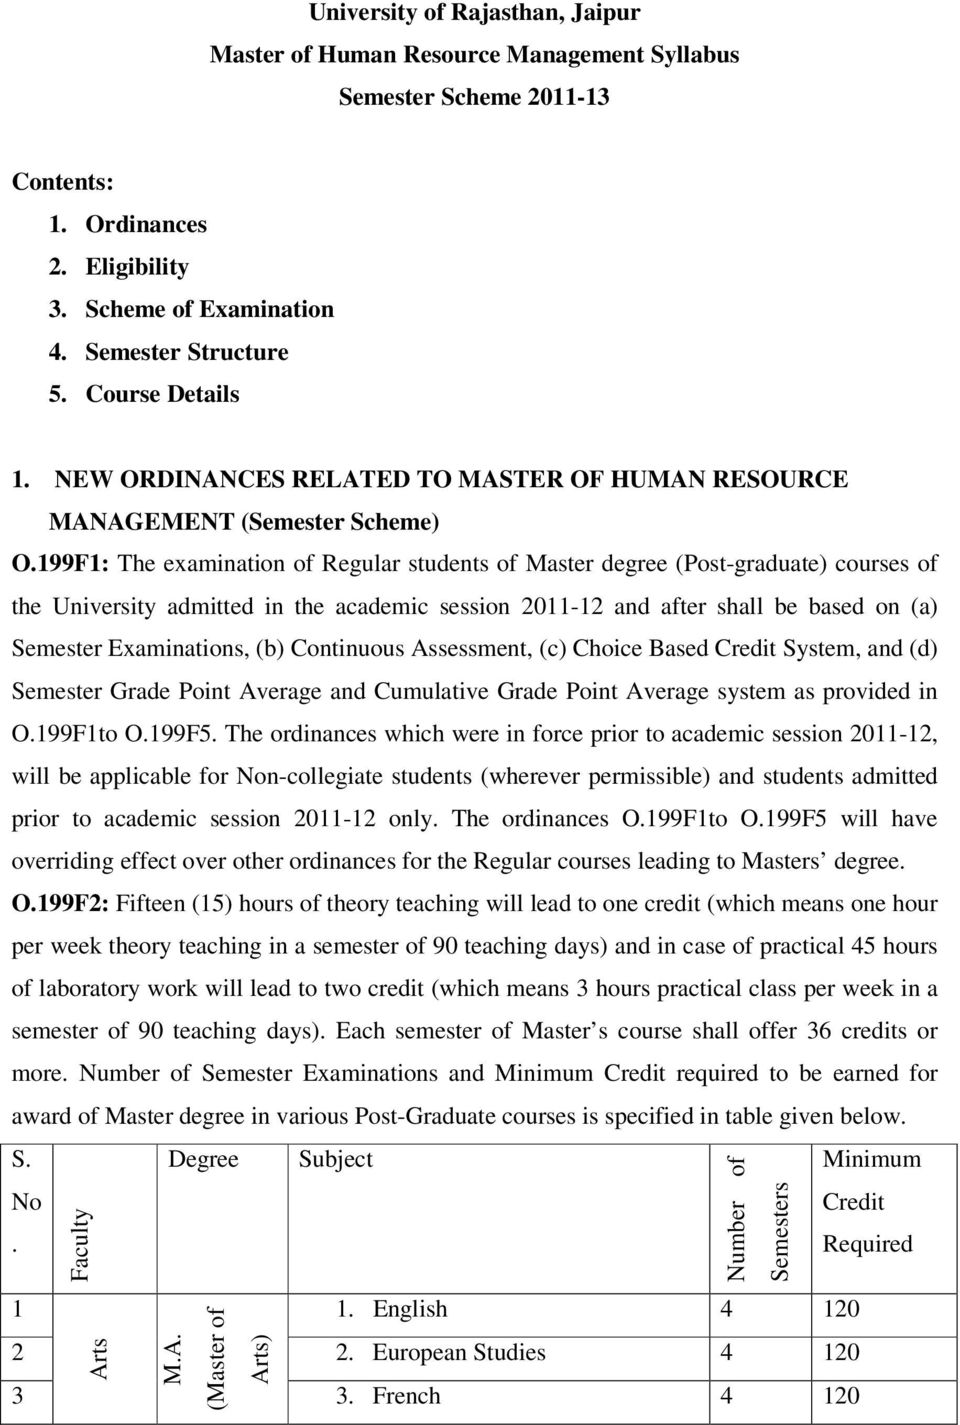 199F1: The examination of Regular students of Master degree (Post-graduate) courses of the University admitted in the academic session 2011-12 and after shall be based on (a) Semester Examinations,